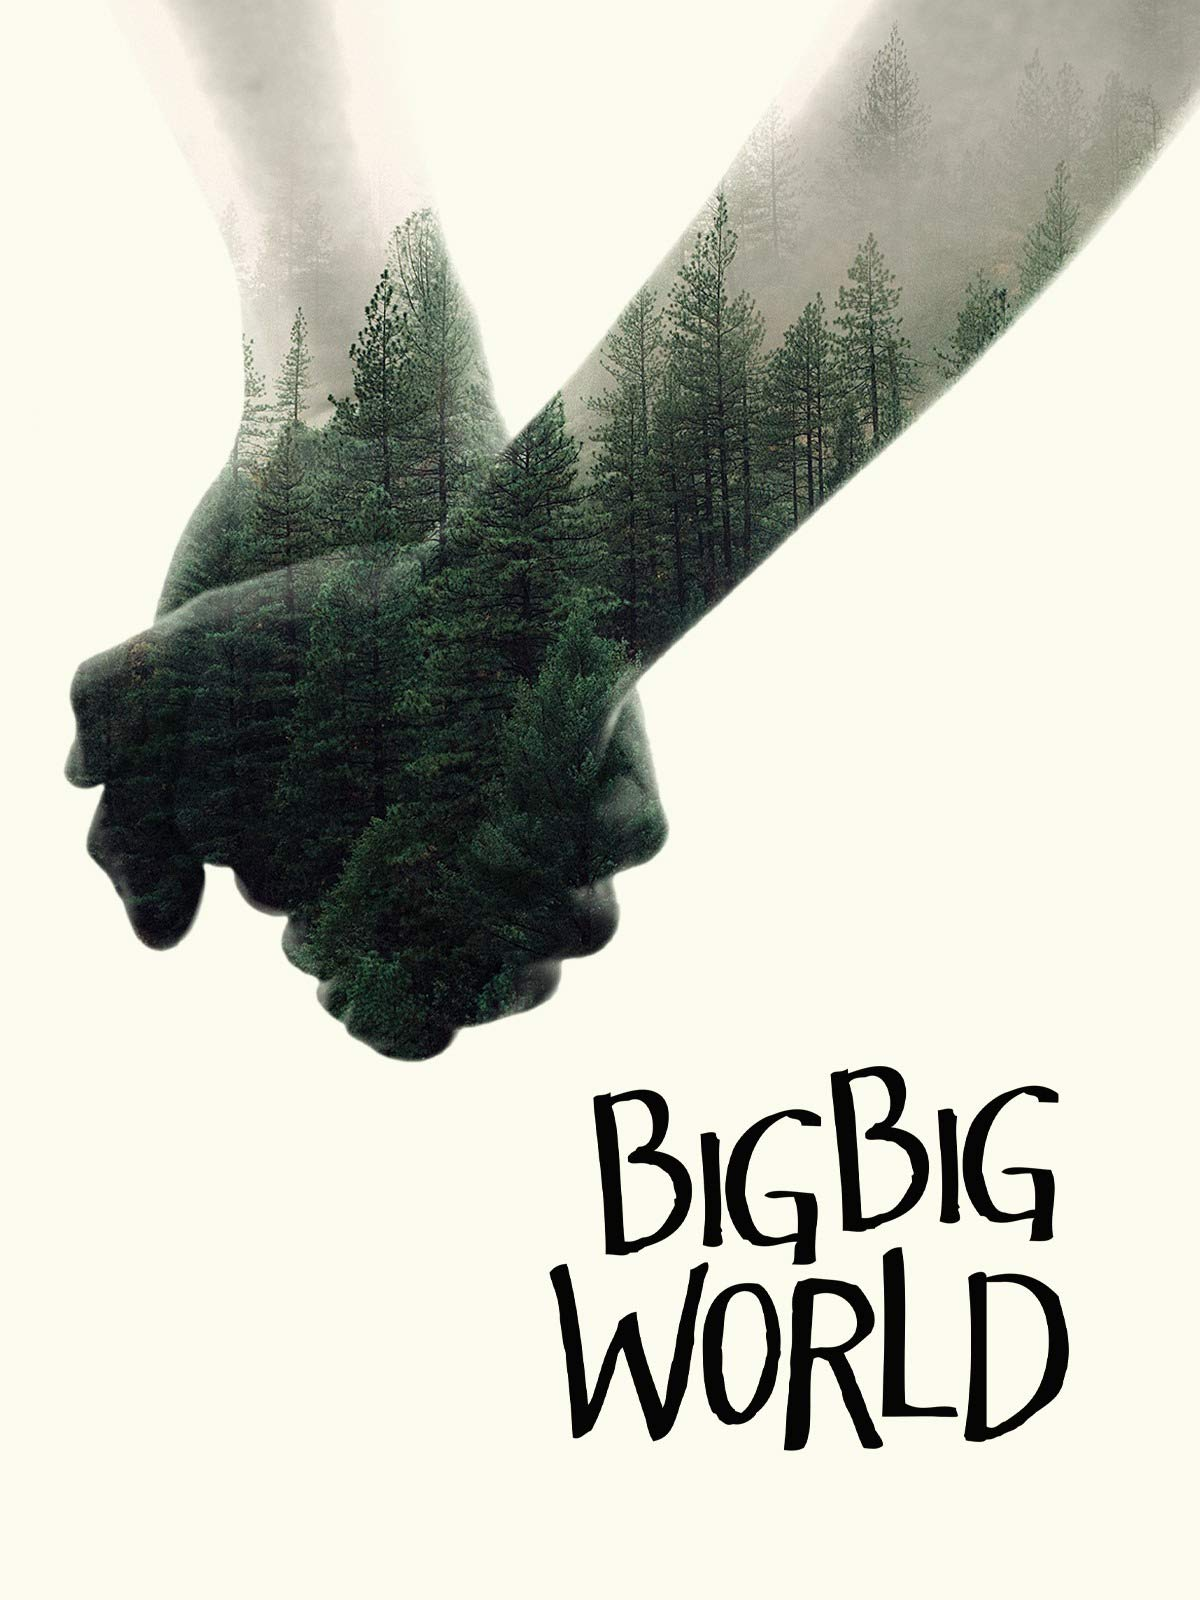 Big Big World